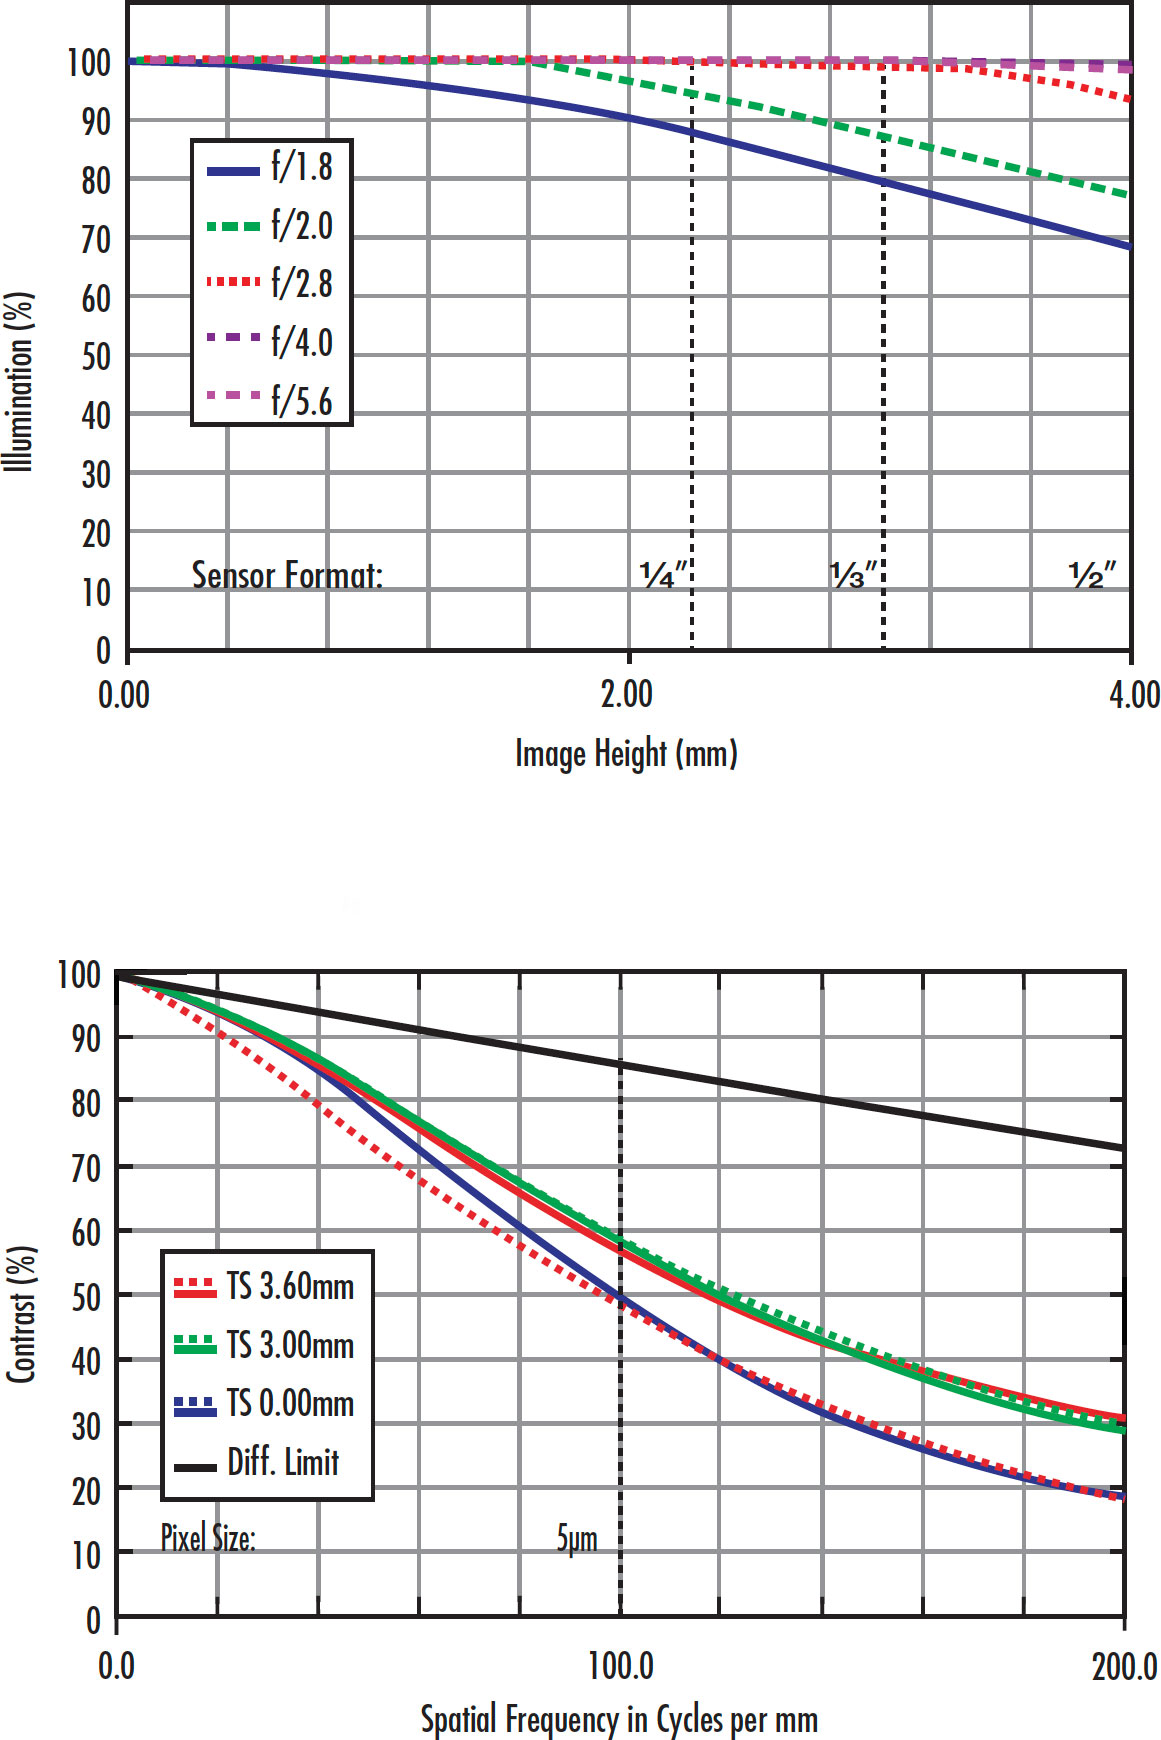 Figure 1: A high resolution 25mm lens's MTF at different settings, reinforcing the importance of comparing the specific lens curves.